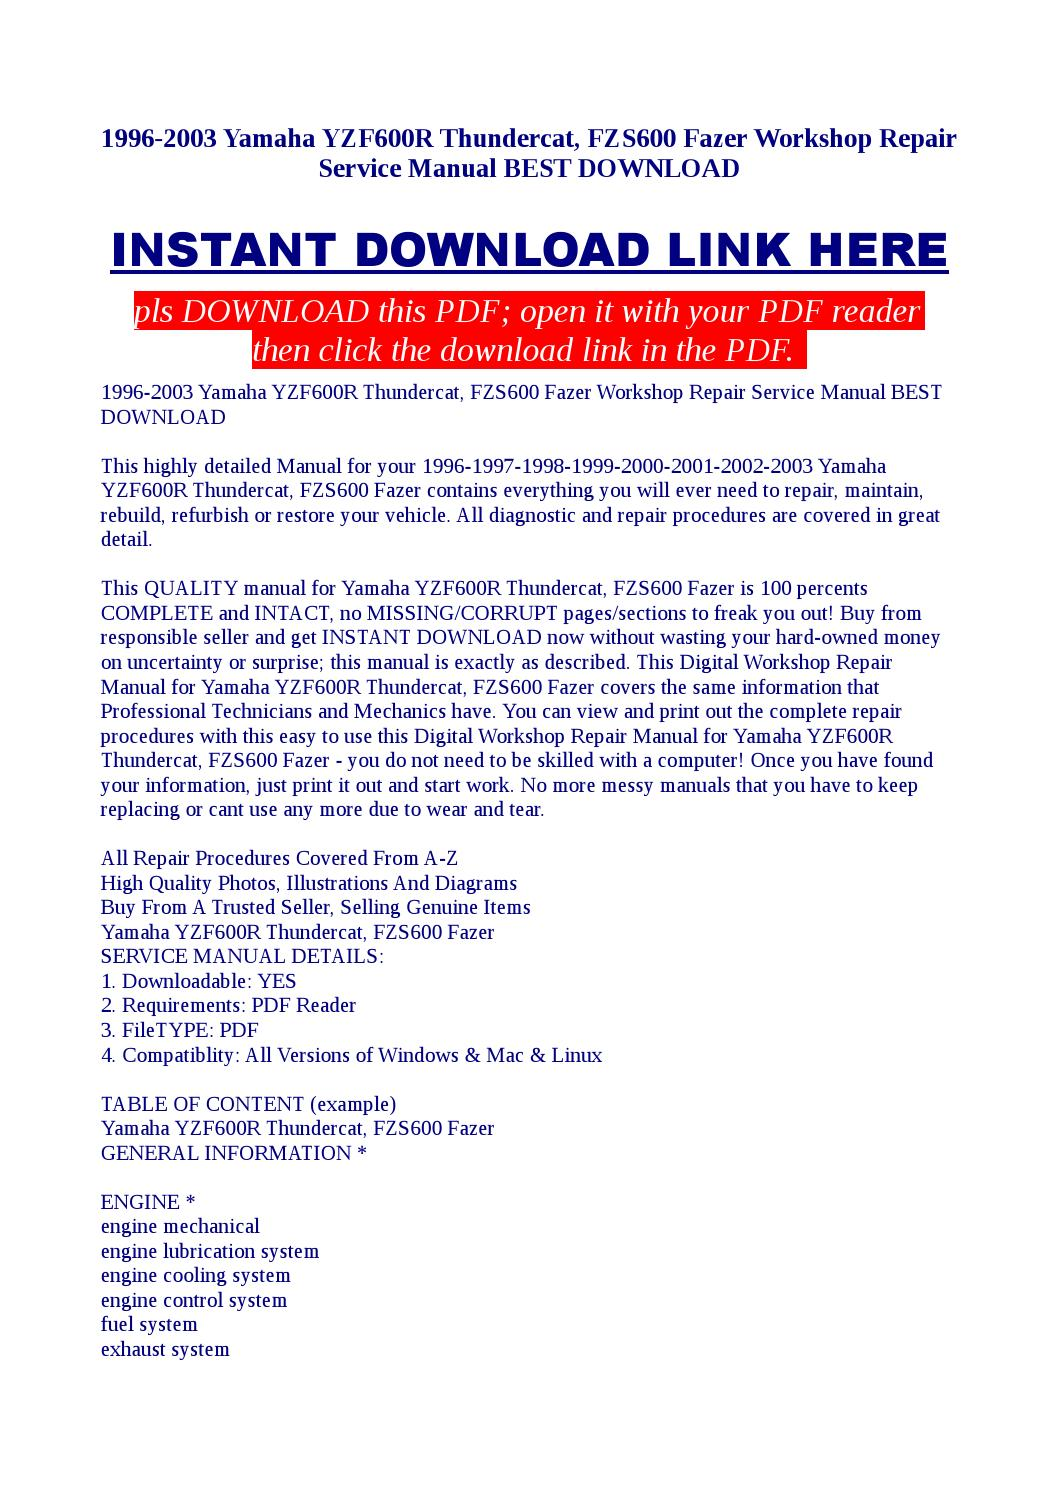 1996 2003 yamaha yzf600r thundercat, fzs600 fazer workshop repair service  manual best download by Kato Syomo - issuu